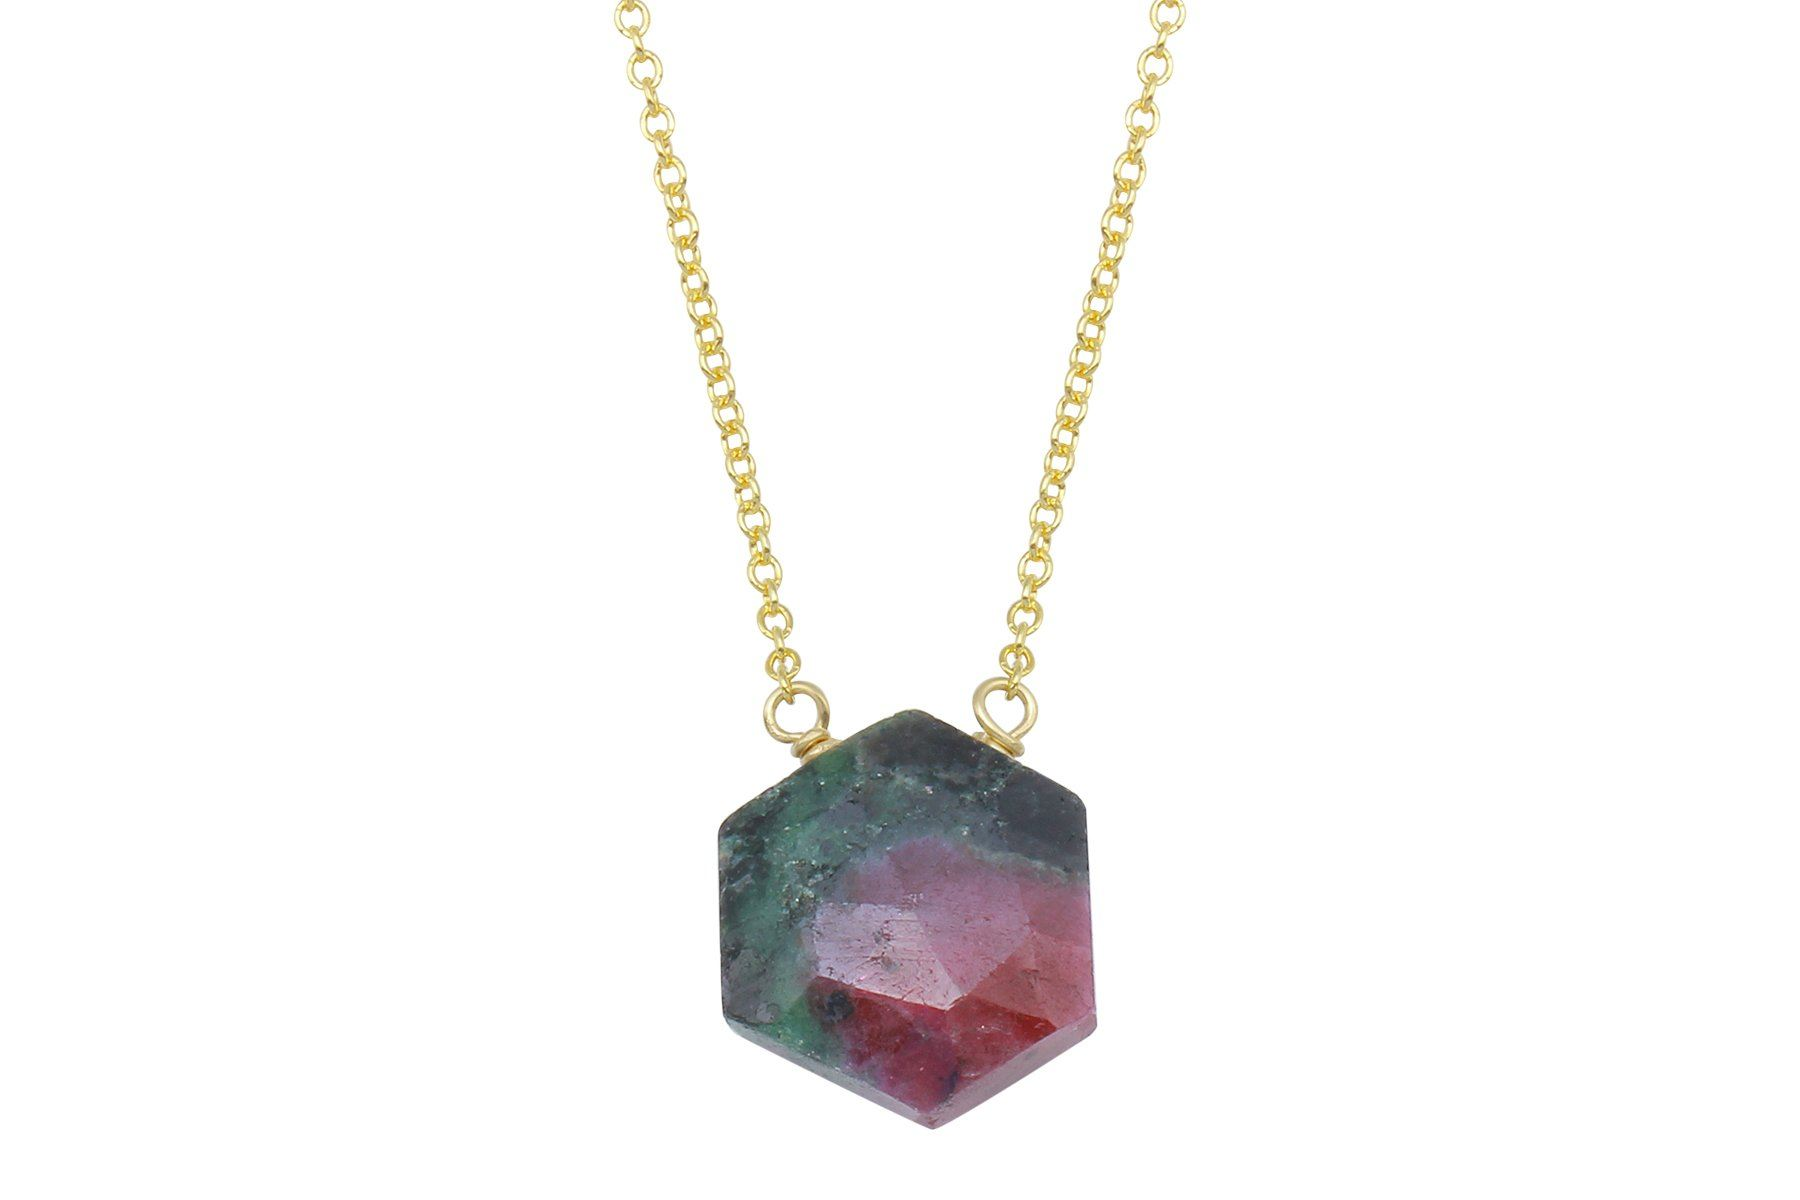 Ruby in zoisite hexagon 14k yellow gold filled necklace - Amanda K Lockrow